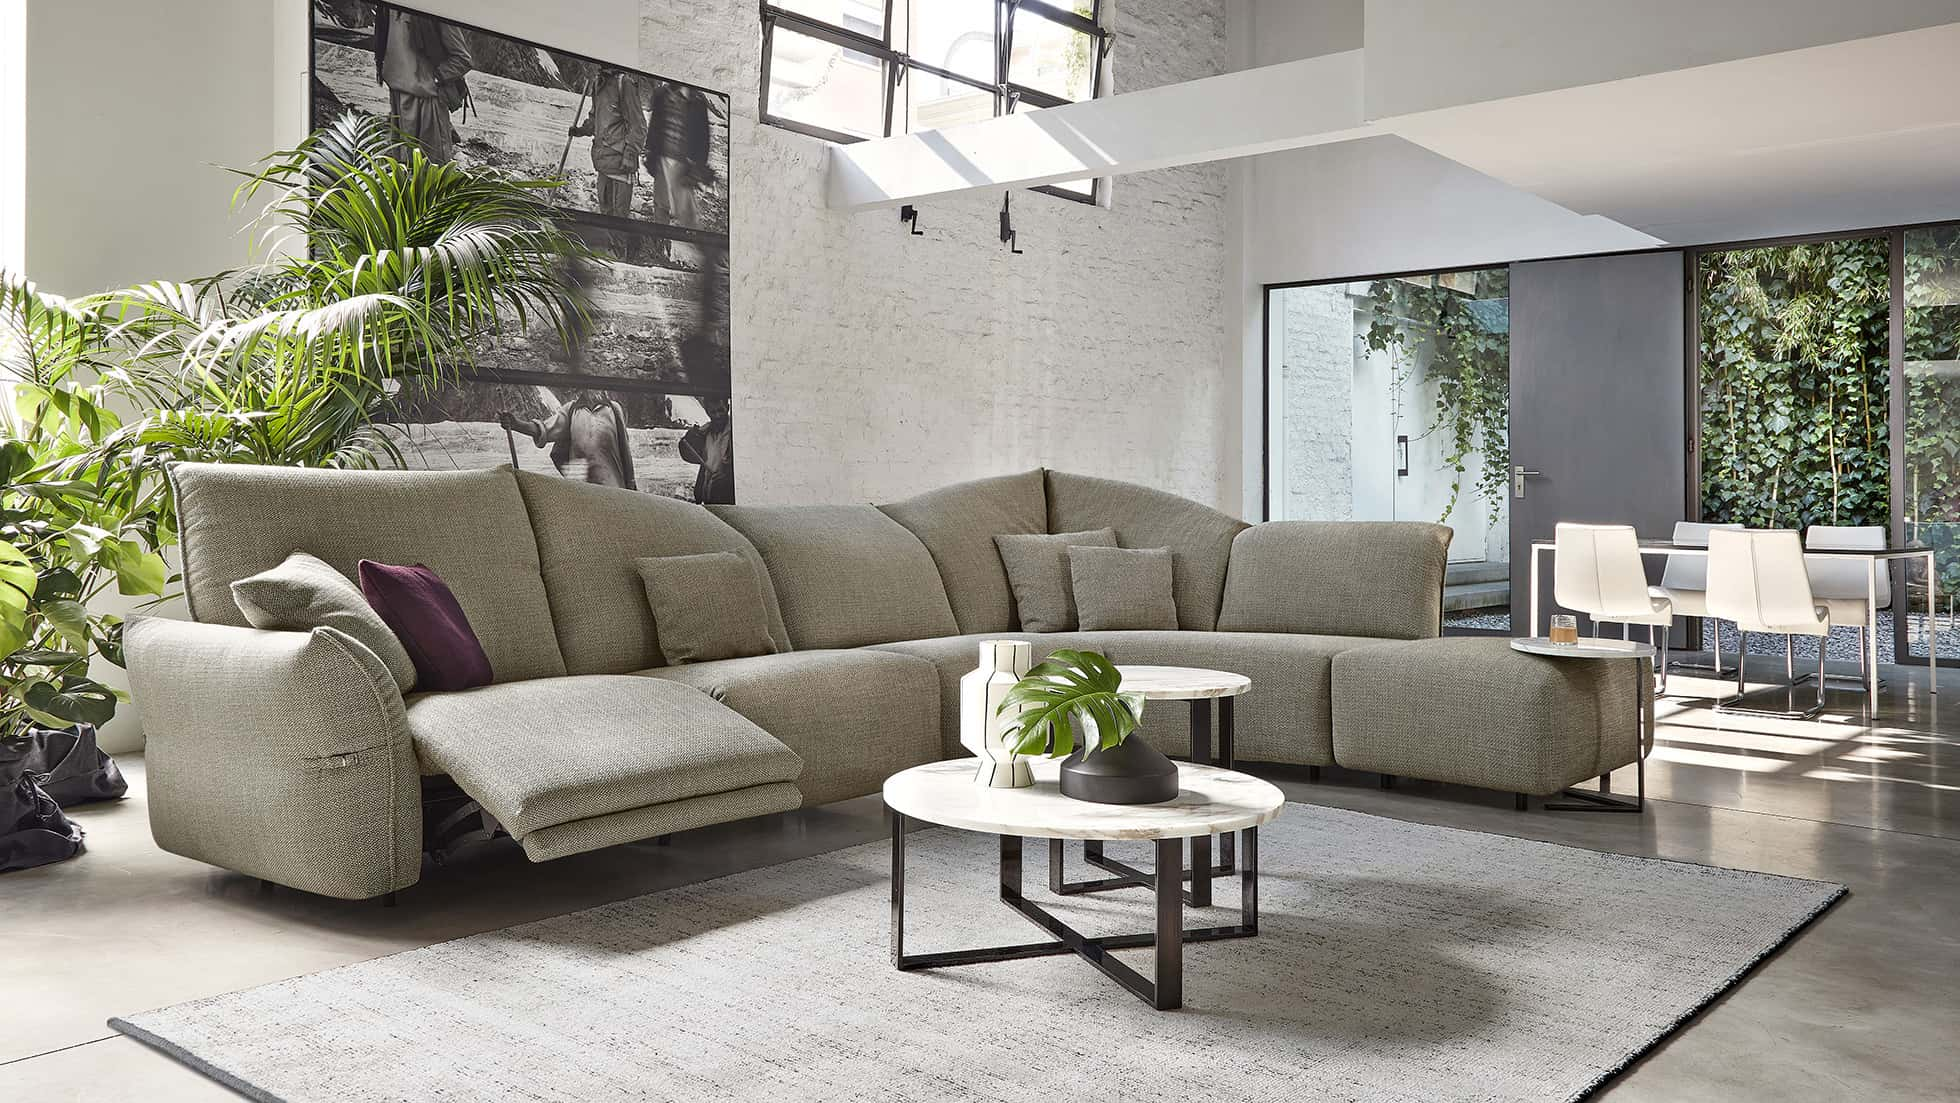 A Sophisticated Design Back Cushion Gives A New Kind Of Living Room.  Softness And Relaxation Represent The Leeds Focus Thanks To The Inside  Reclining ...